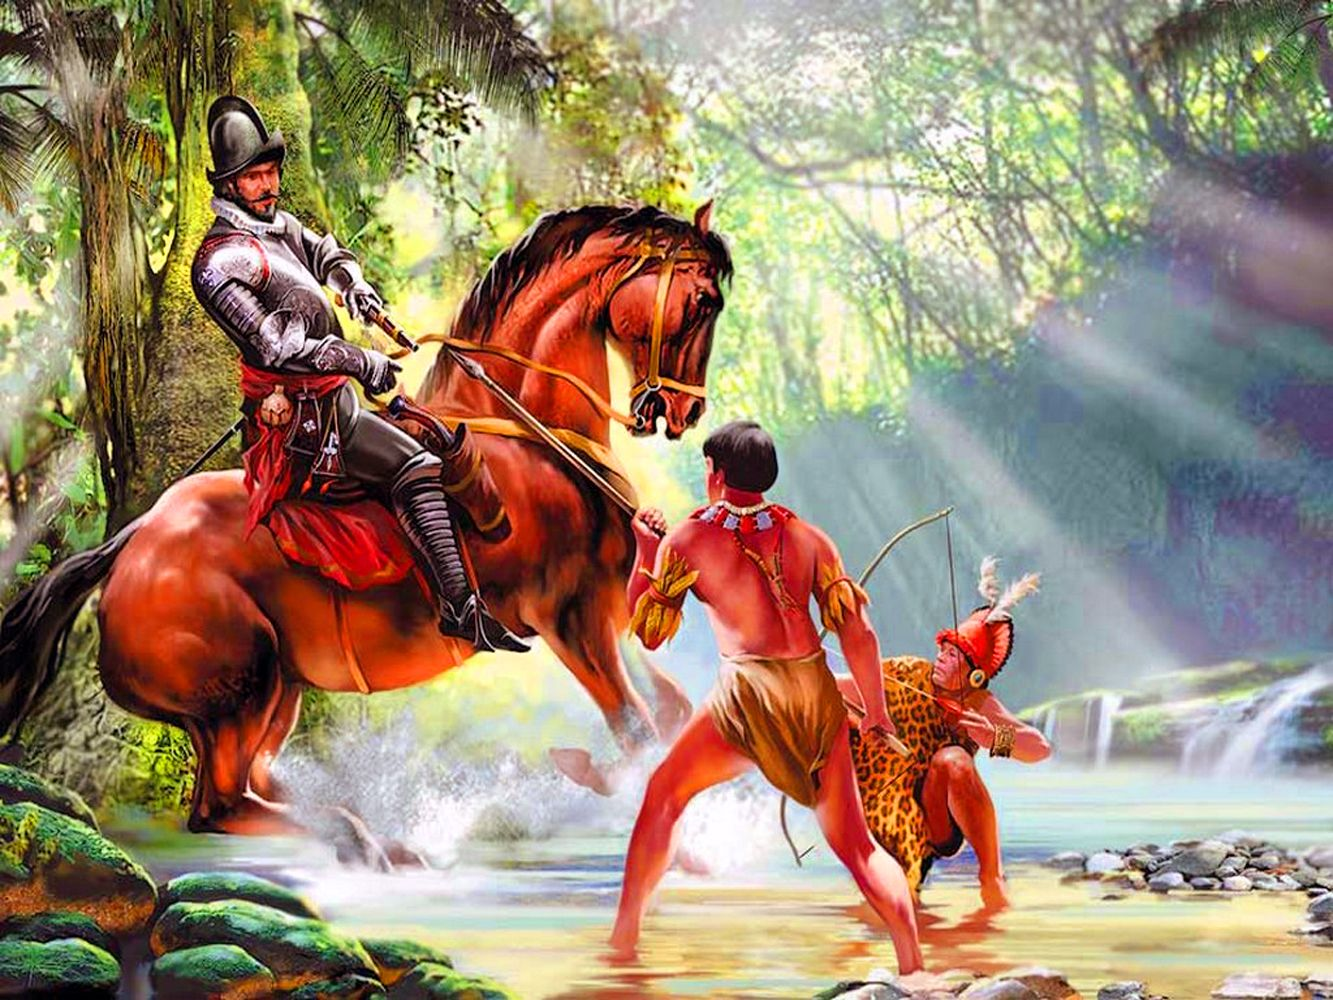 Spanish Conquistador Battling The Native Indians In The New World